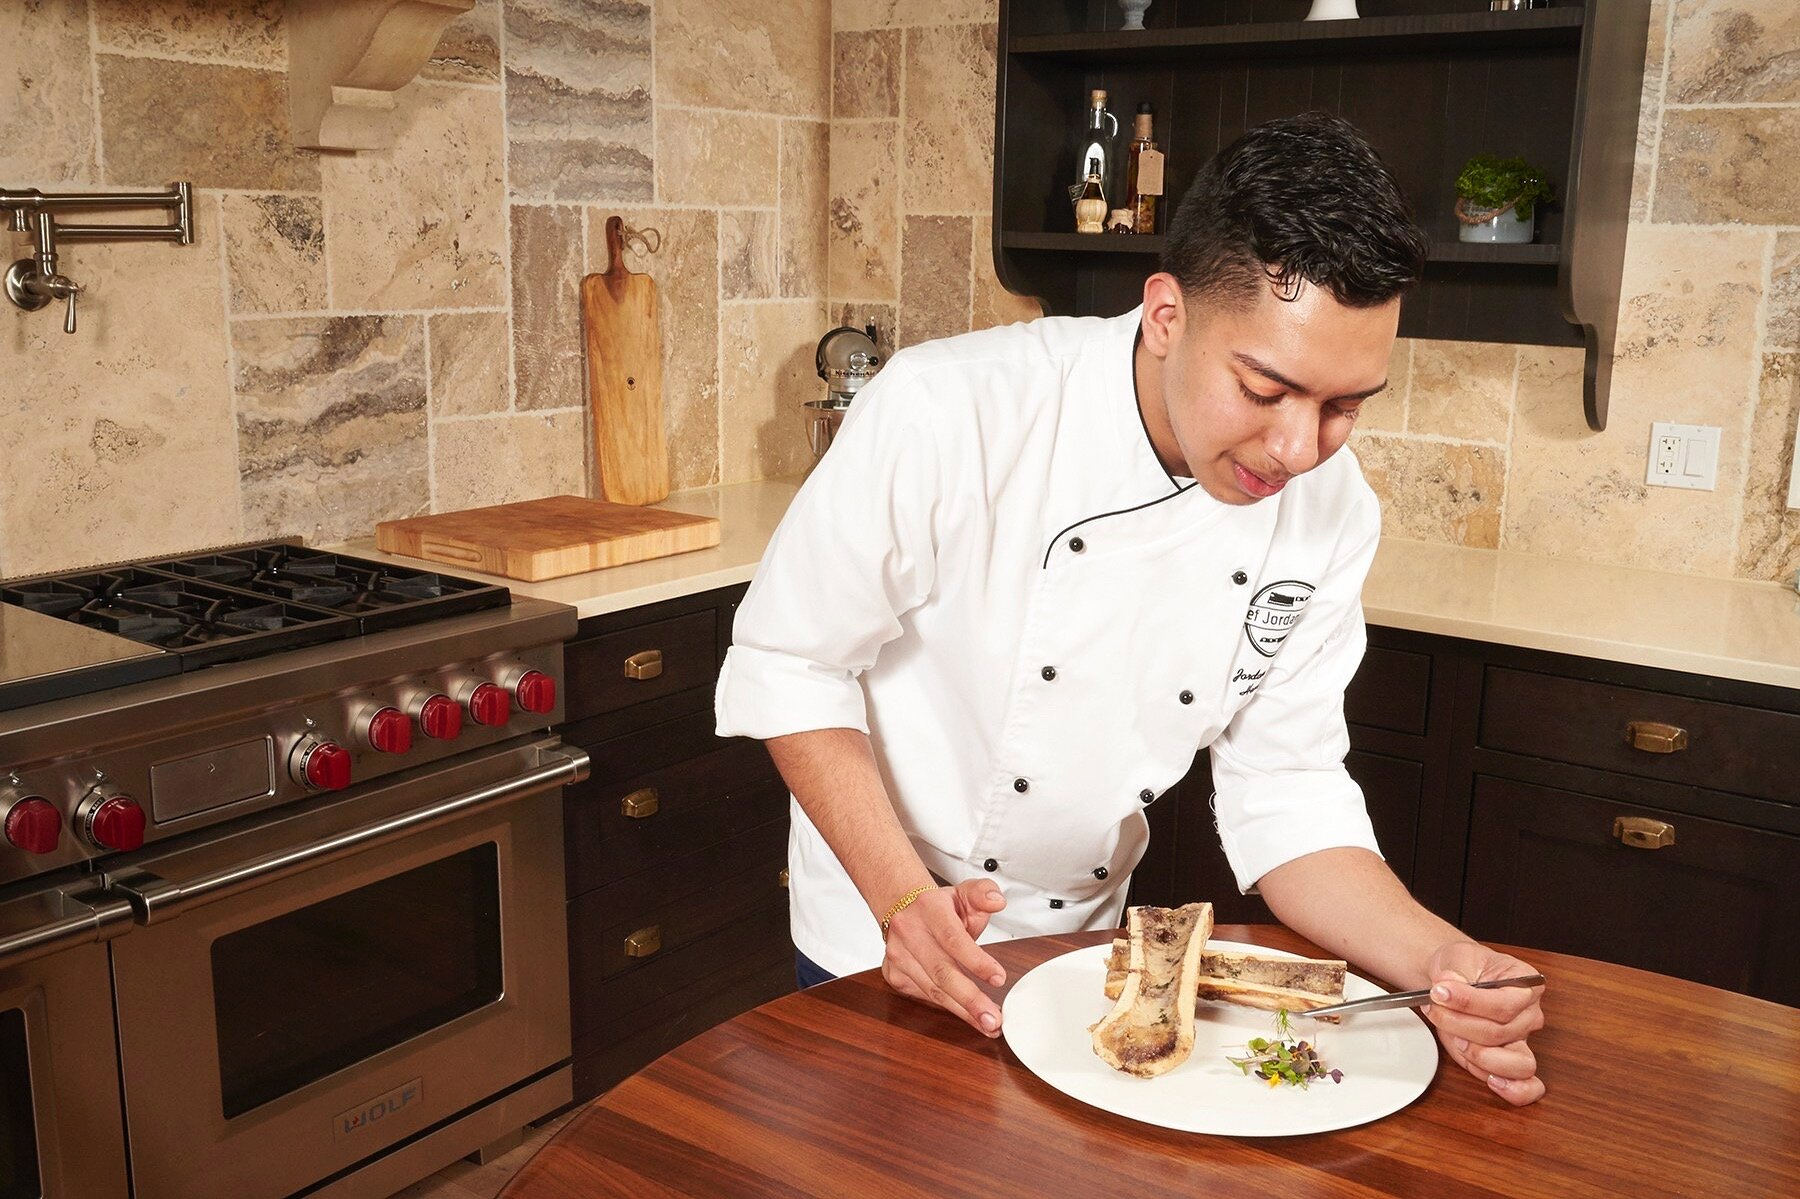 About Chef Jordan - My name is Jordan Diniz, I am a young chef; constantly looking for new opportunities to expand my culinary knowledge and further my experience as a chef. My culinary outlook is oriented around creating unique, sustainable and of course delicious meals for my clients. I try my best to use local ingredients throughout my cooking while promoting Canadian ingredients and respecting the product and natural flavors. Since my youth, I had a passion for cooking, learning about the subtle nuances of different foods and what can make a meal breathtaking. I am currently working towards my dreams of becoming an acclaimed chef and having my own distinguished restaurant.